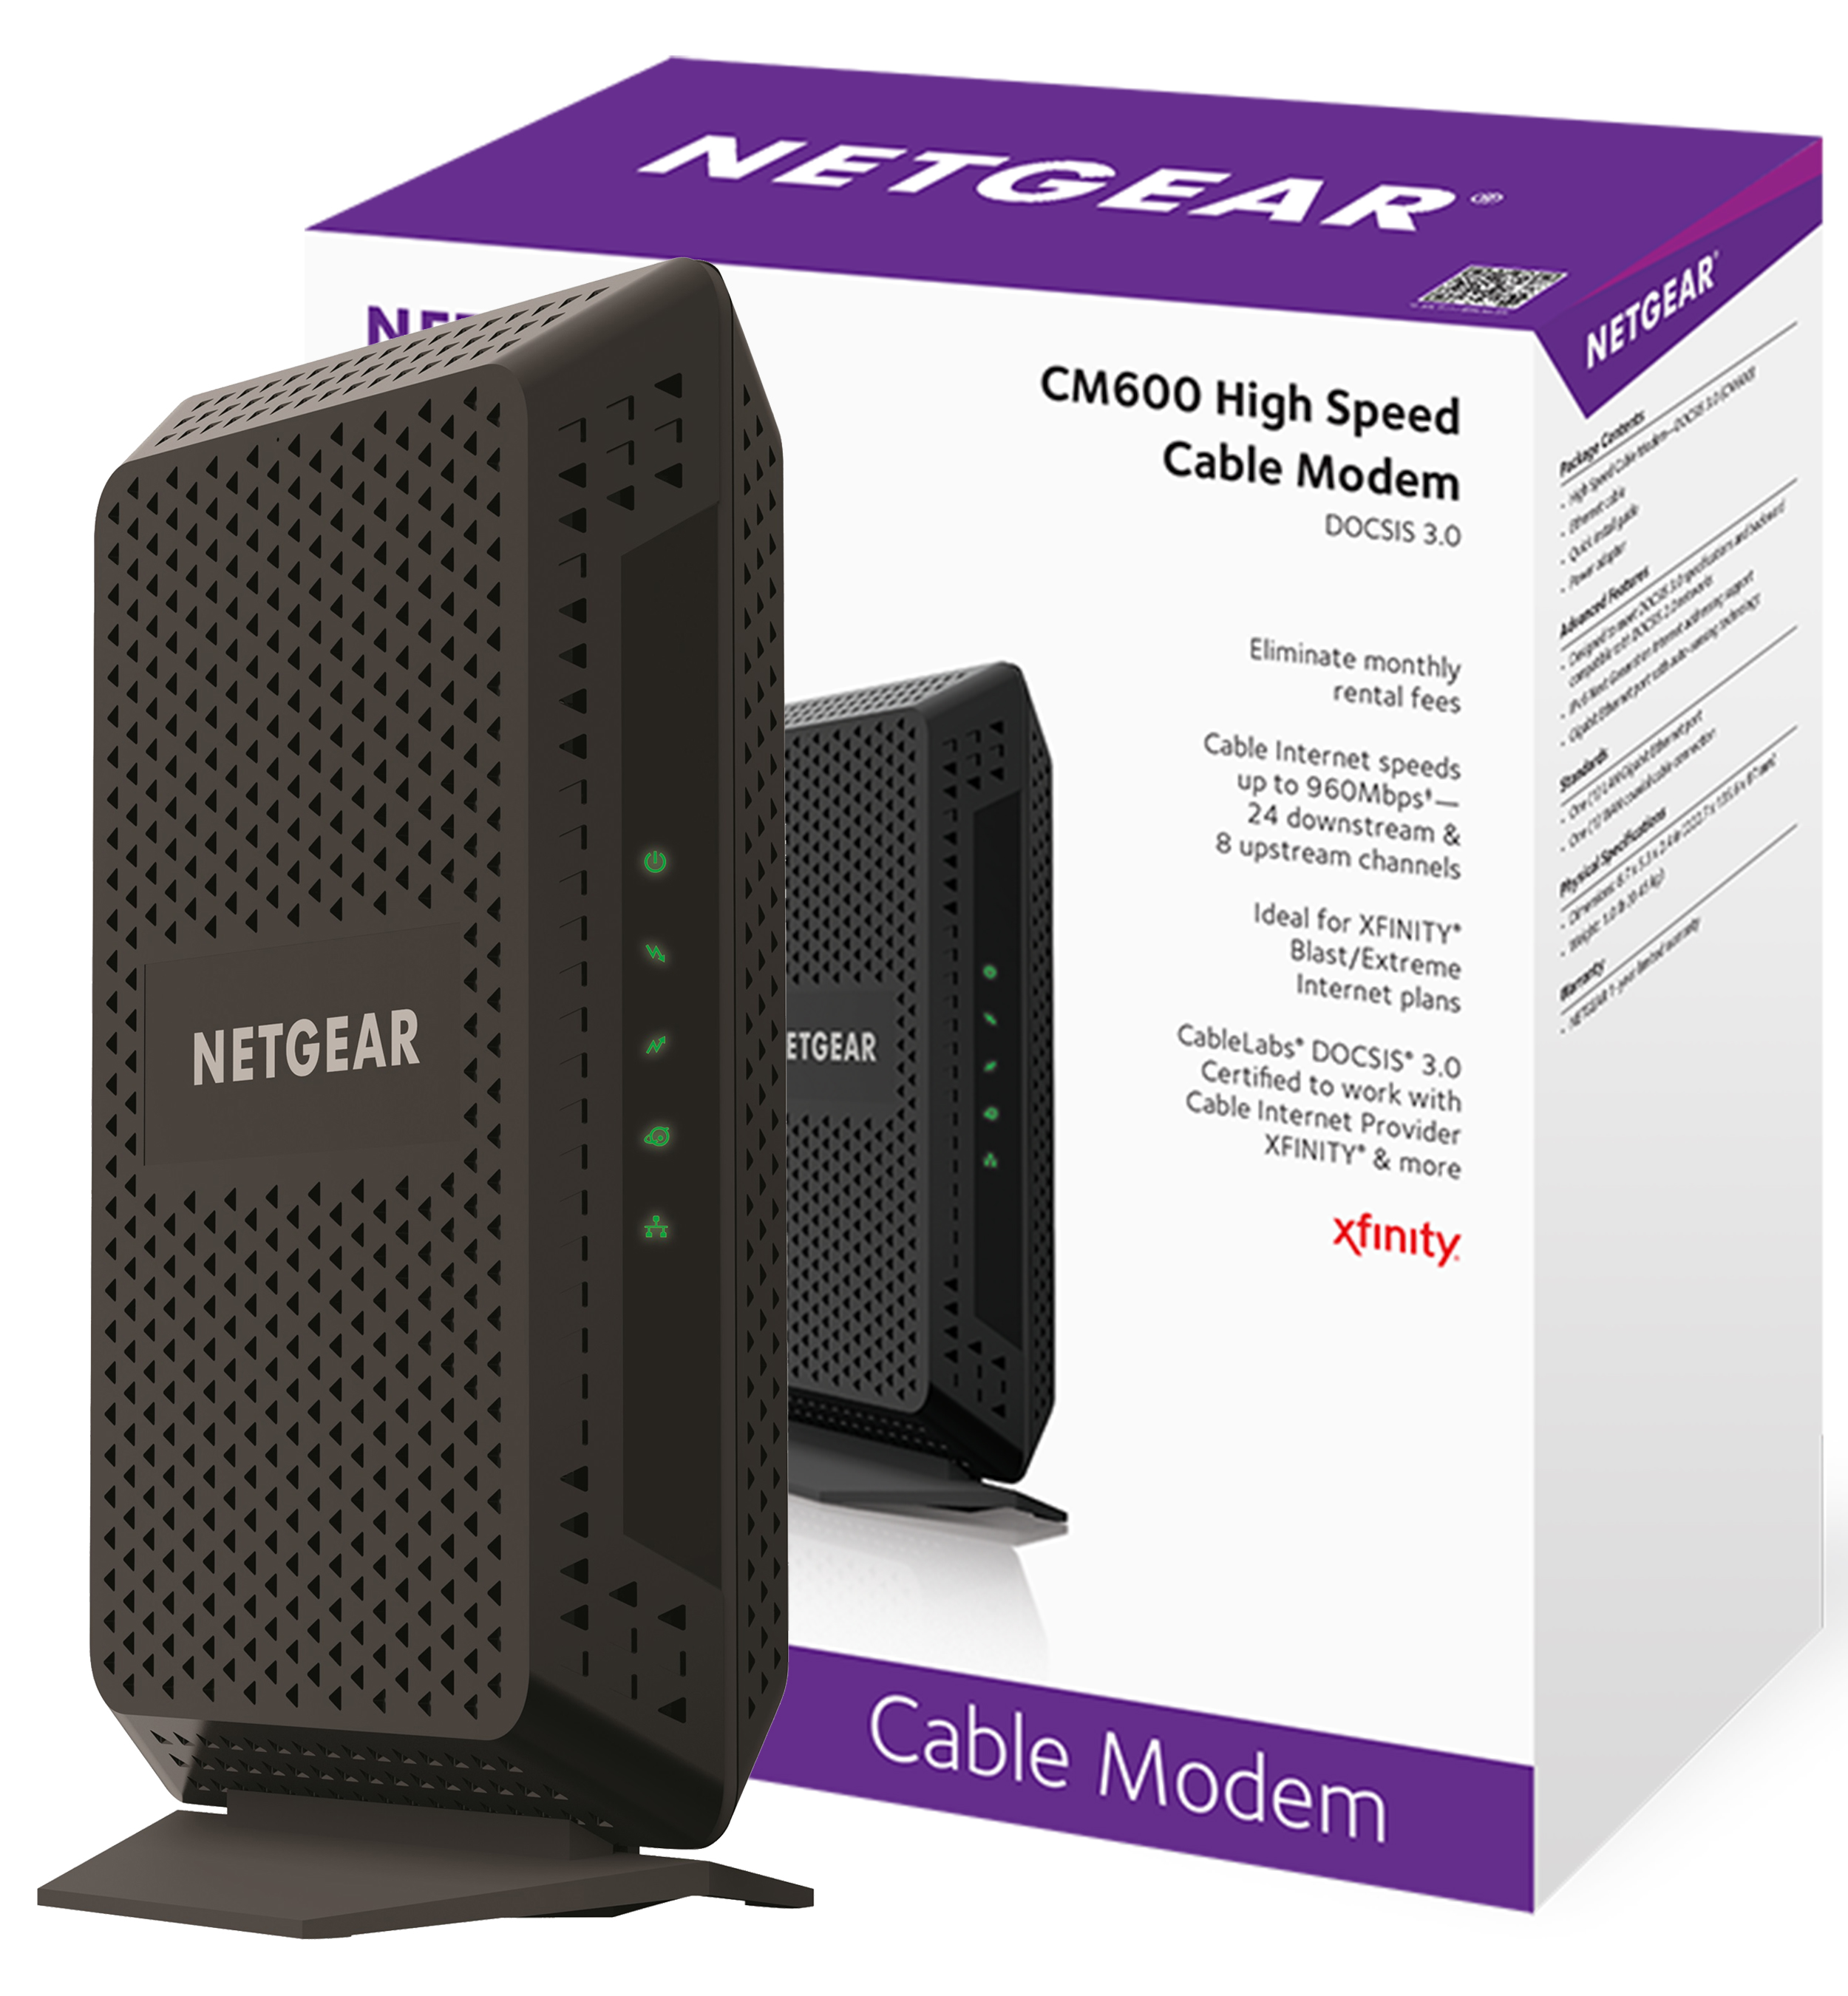 Cox Netgear Electrical Wire Diagram - good #1st wiring diagram on